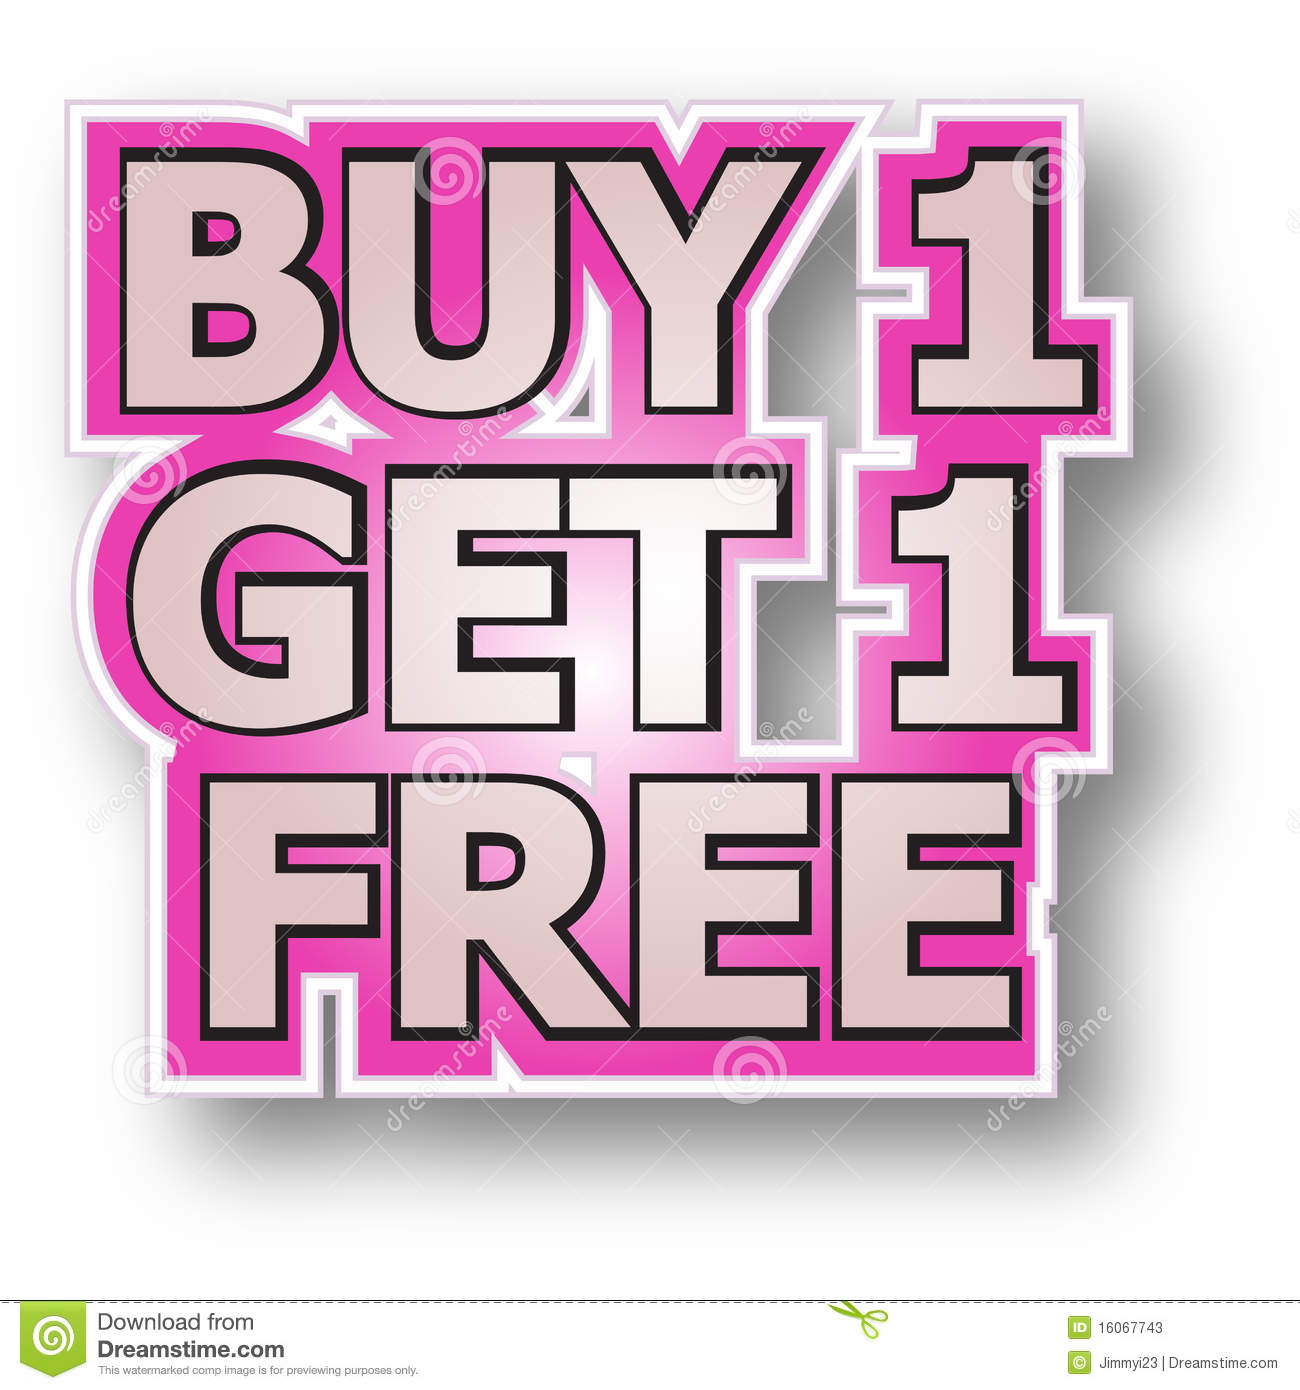 Buy: Buy 1 Get 1 Free Stock Vector. Illustration Of Promotions